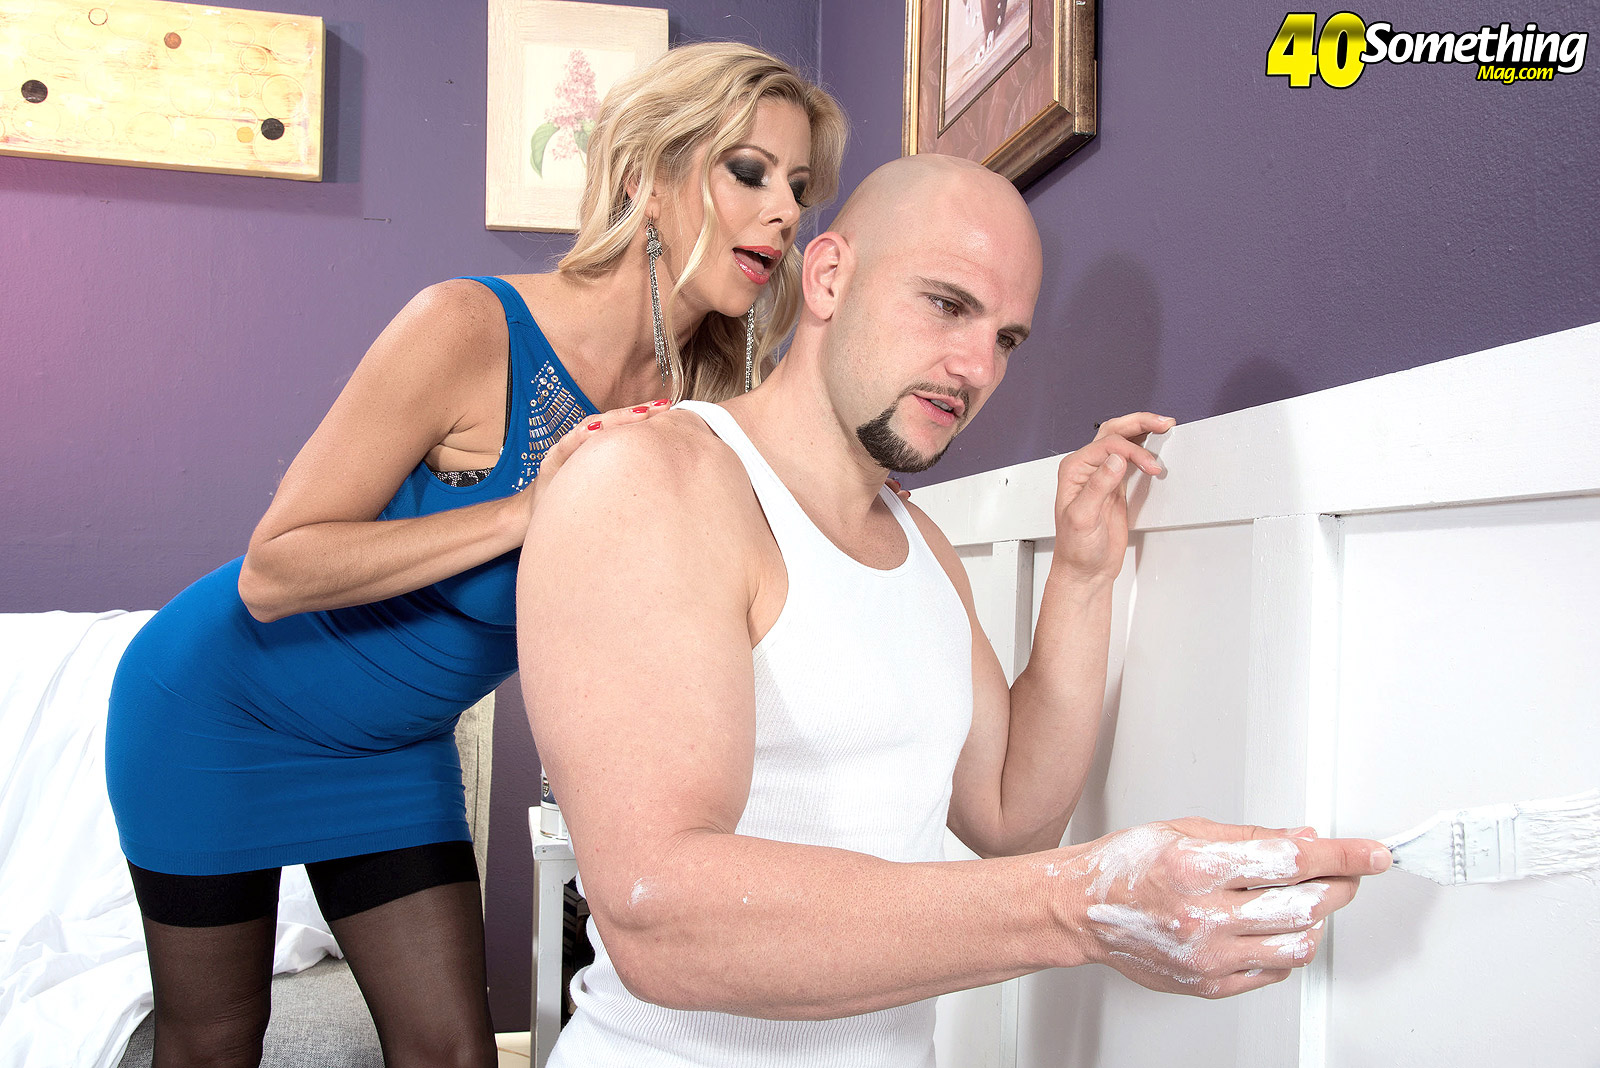 Naked MILF Alexis Fawx displaying huge tits before fucking large penis № 1277126 без смс